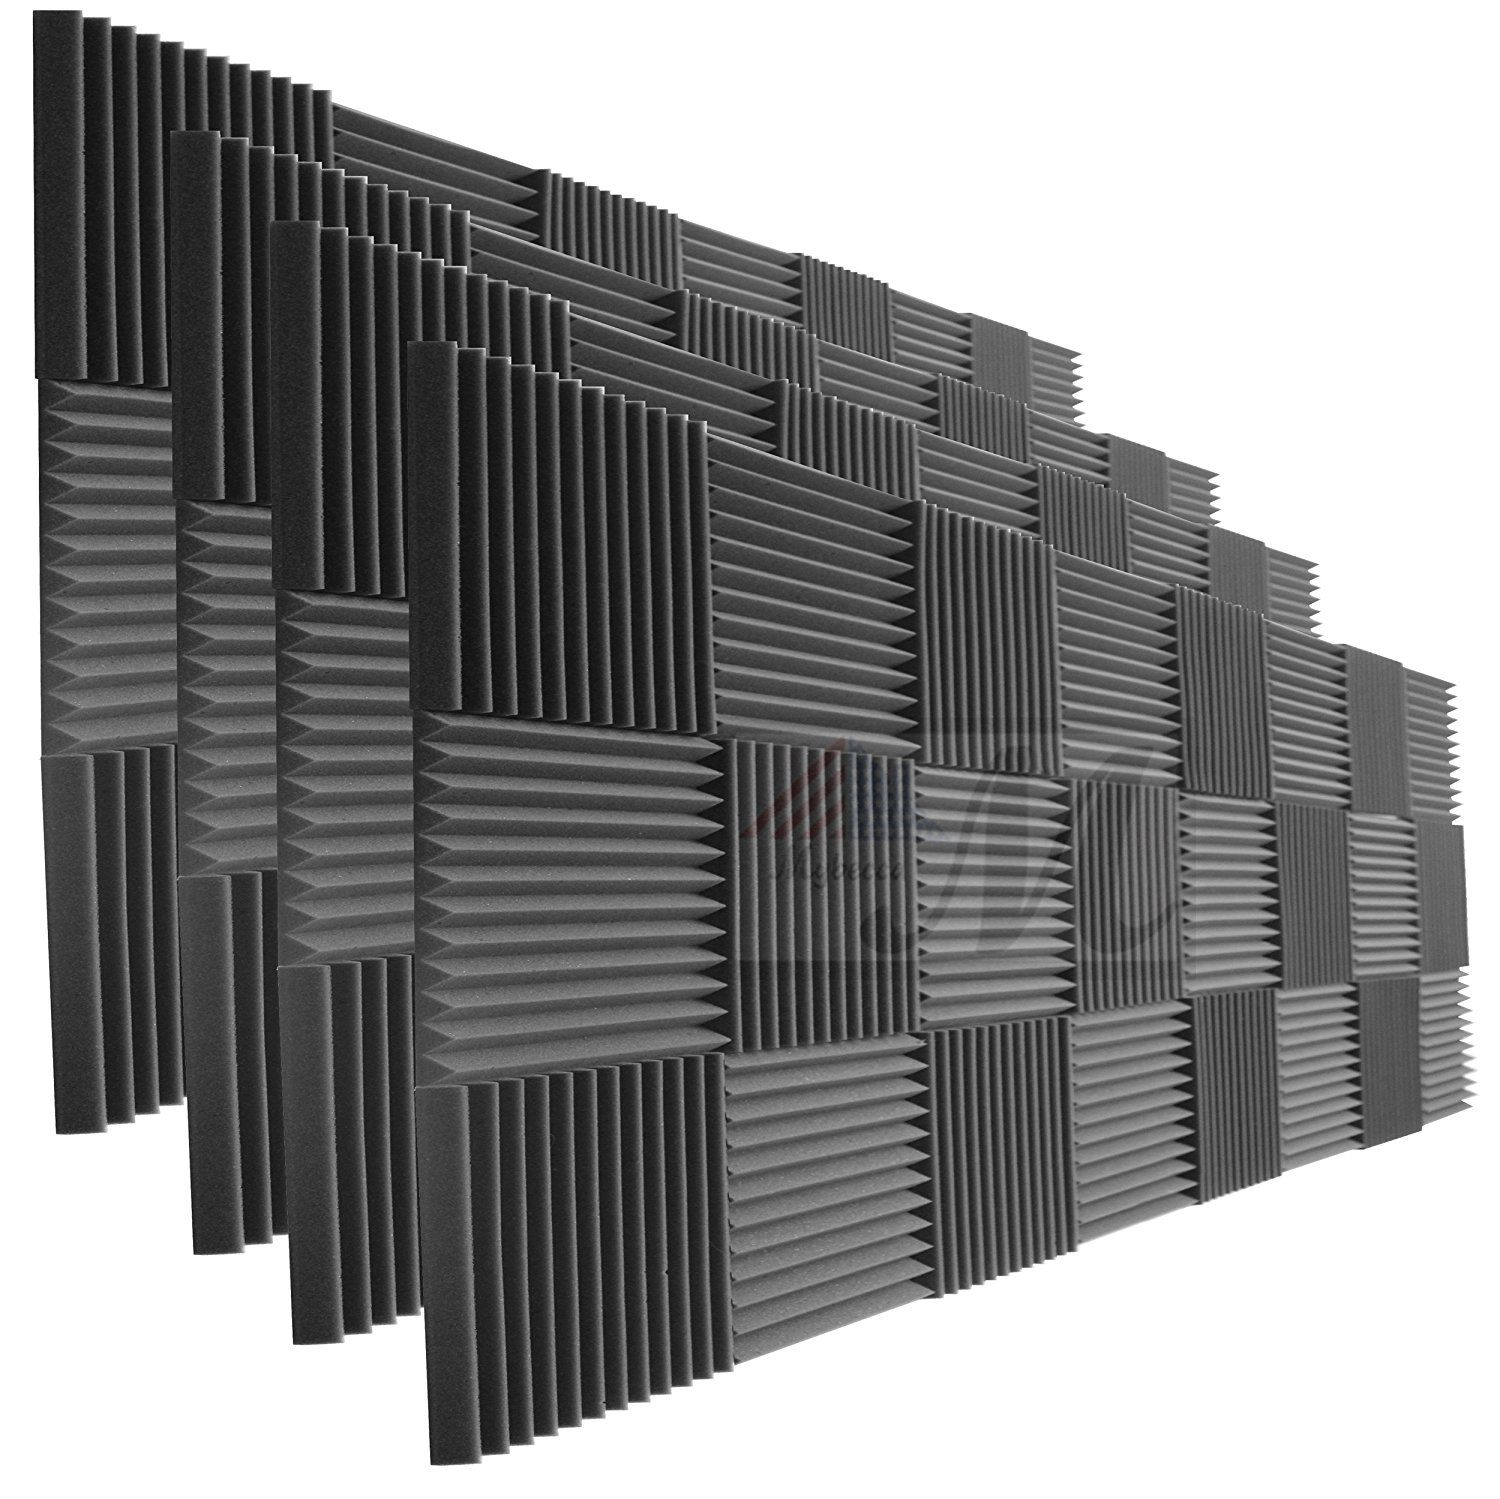 96 Pack Acoustic Panels Studio Foam Wedges 1 X 12 X 12 Studio Foam Acoustic Panels Recording Studio Furniture